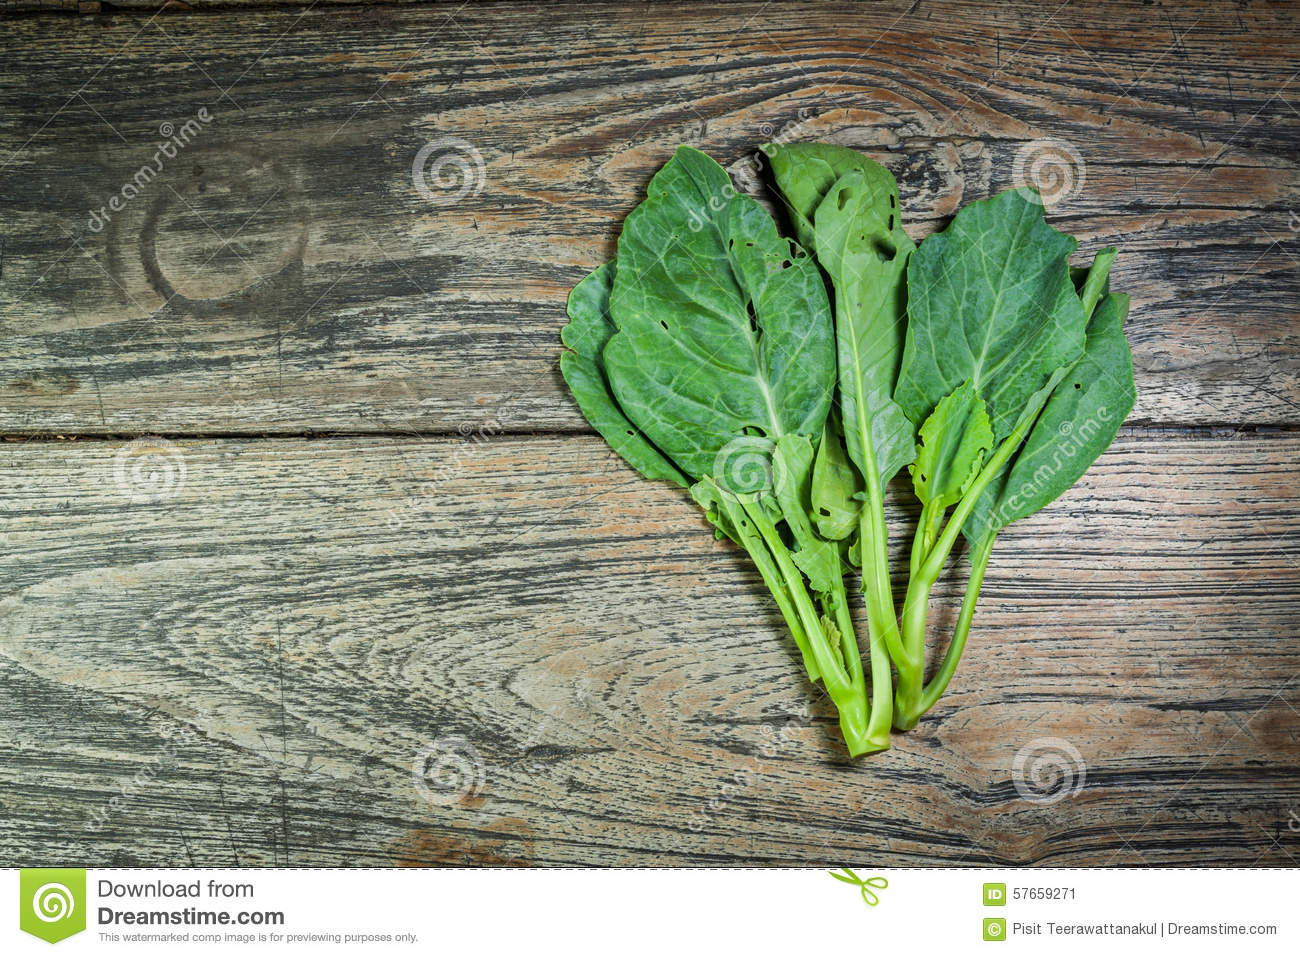 Sapling green kale on old wood background